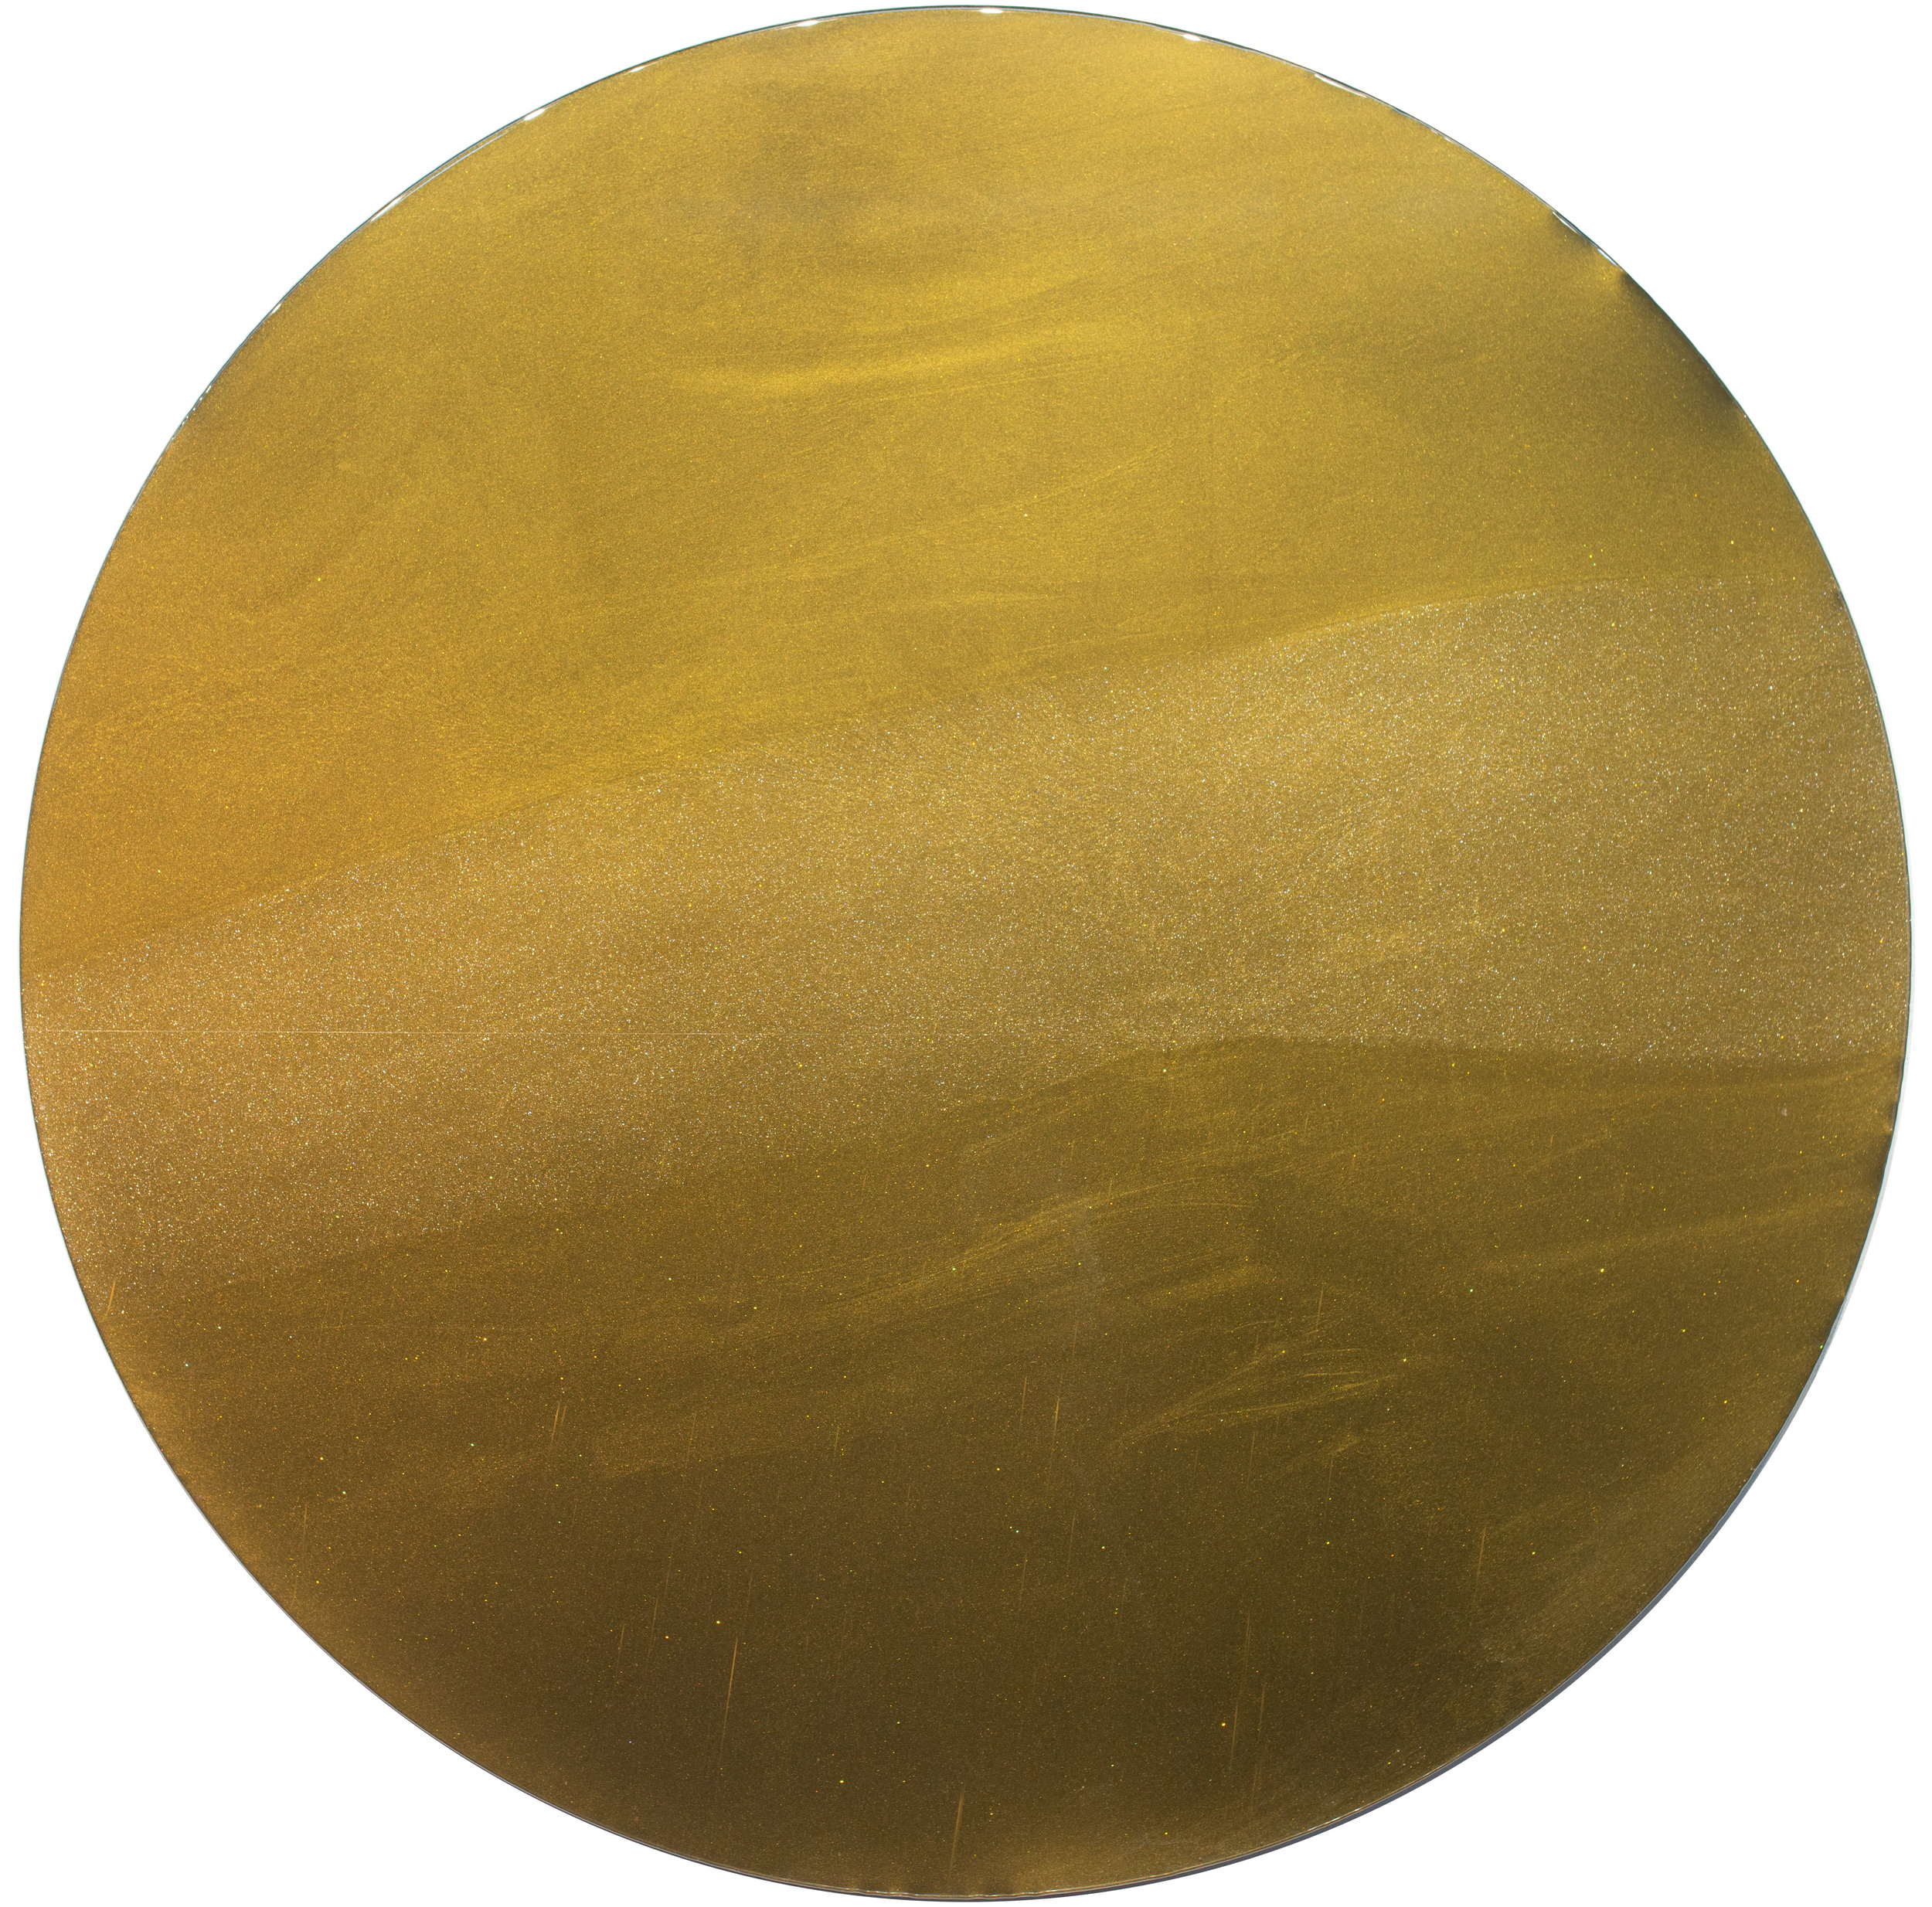 """Full Moon"", 24 k gold, pigment, urethane, resin, stainless steel, 47.5 inches, 2019"